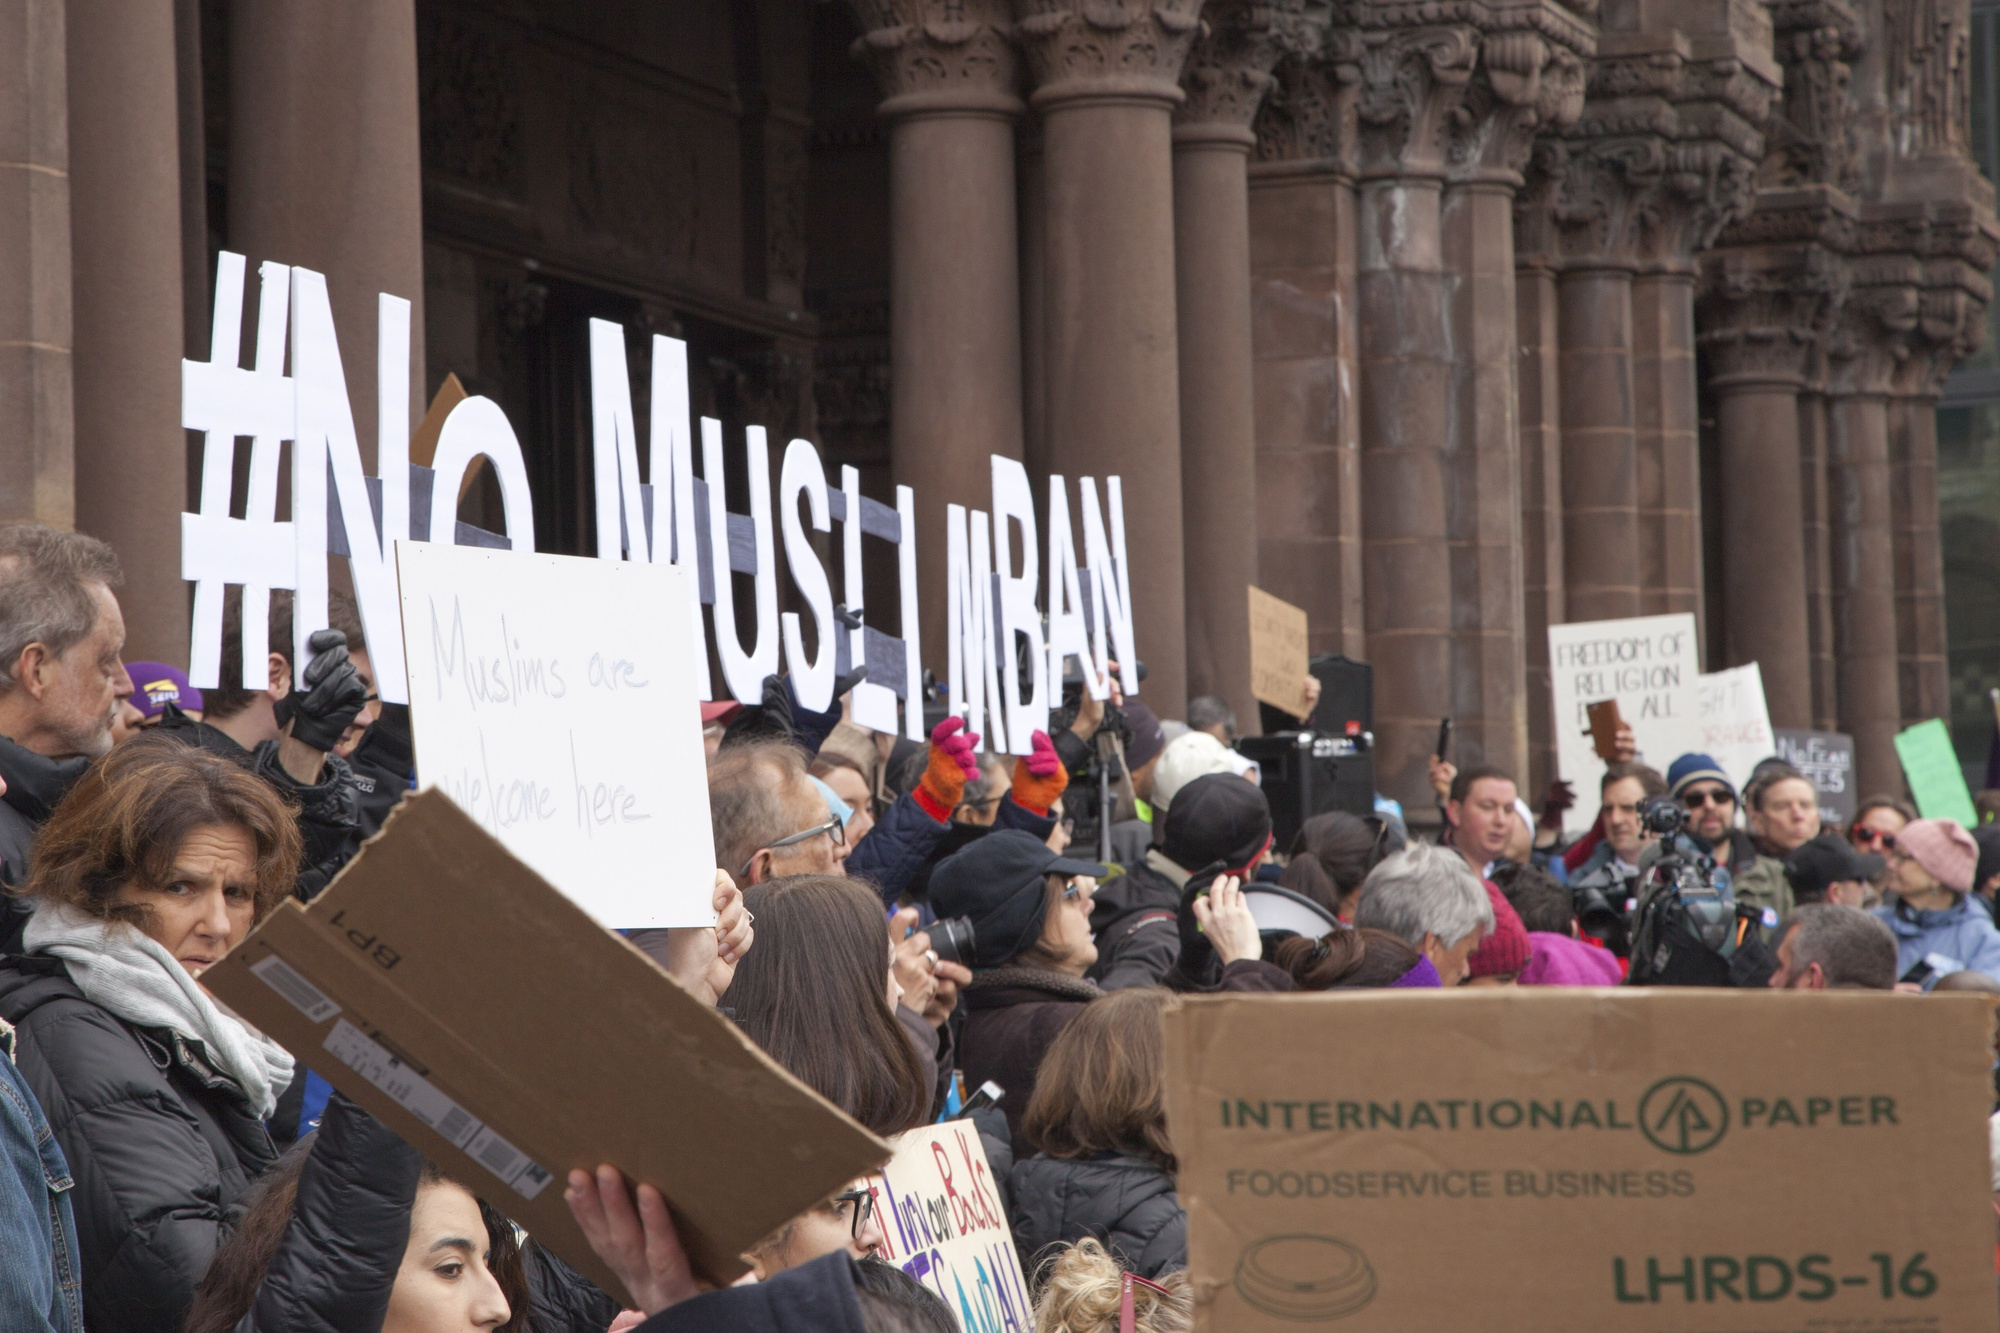 Demonstrators hold signs opposing President Donald Trump's immigration ban during a large rally in Boston's Copley Square Sunday afternoon.